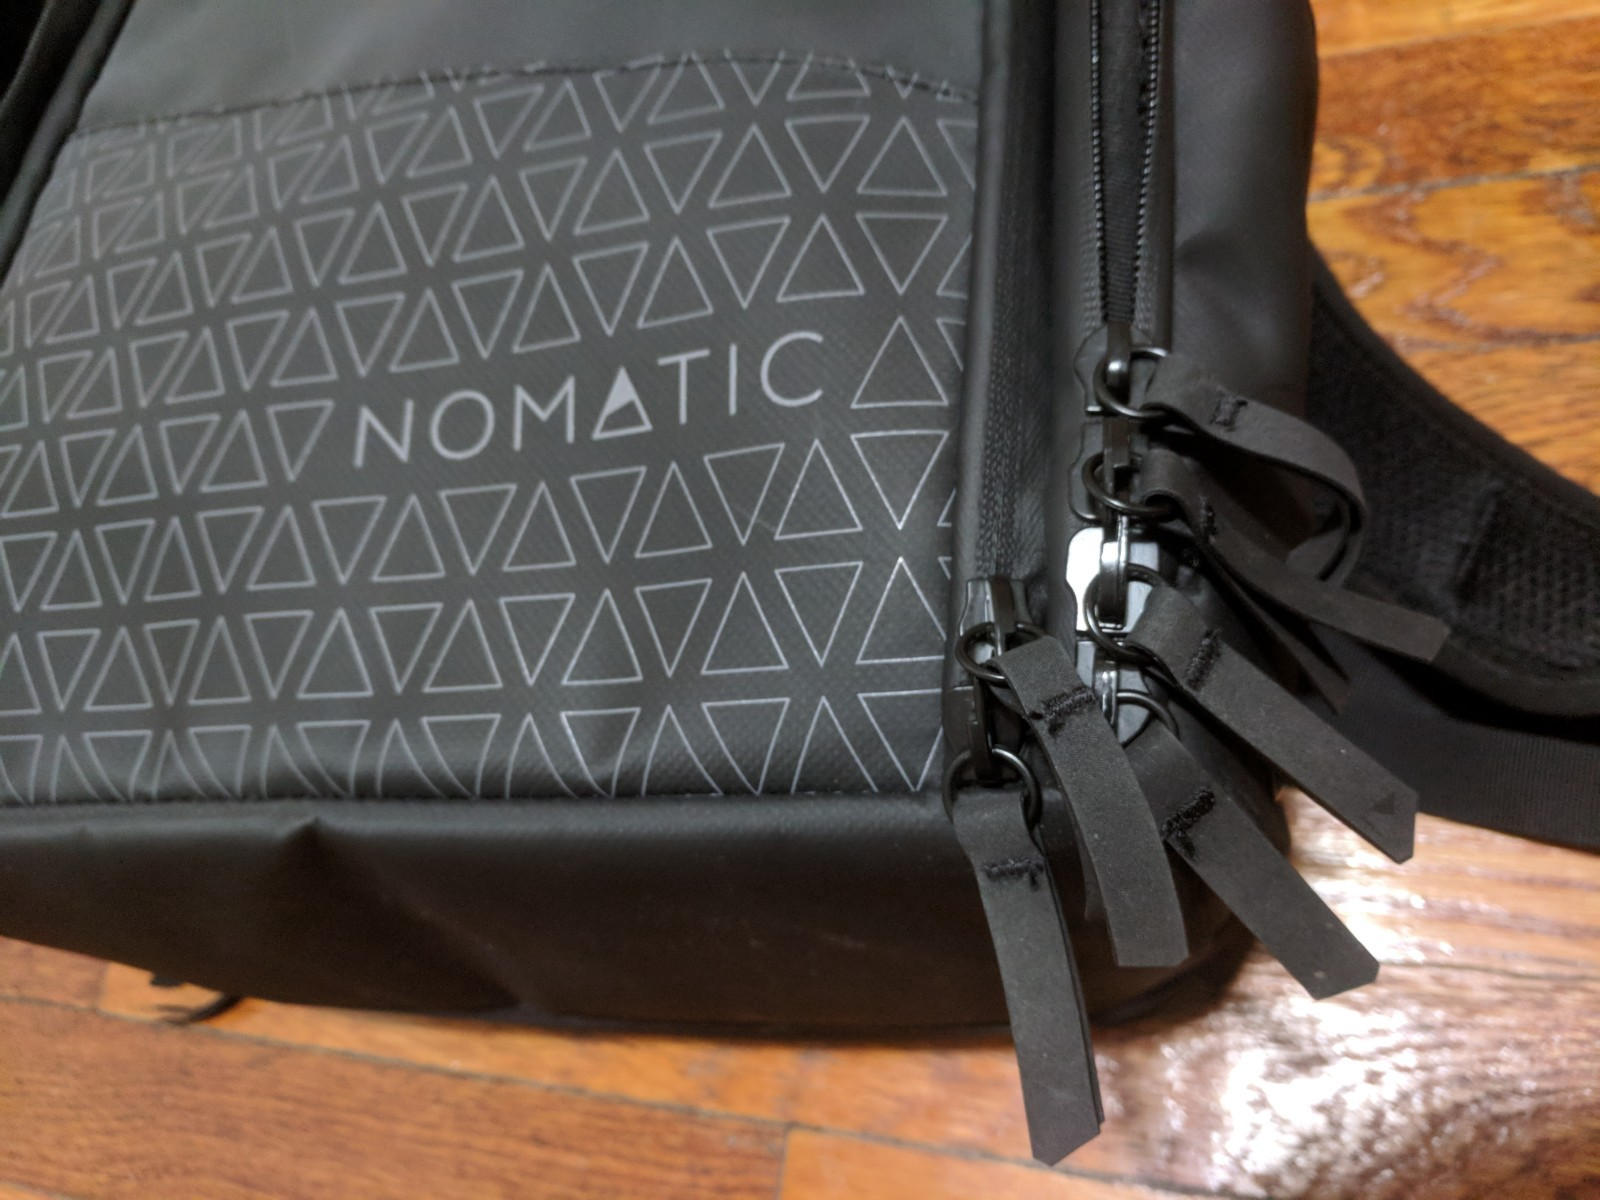 NOMATIC Travel Pack Review - Pangolins with Packs